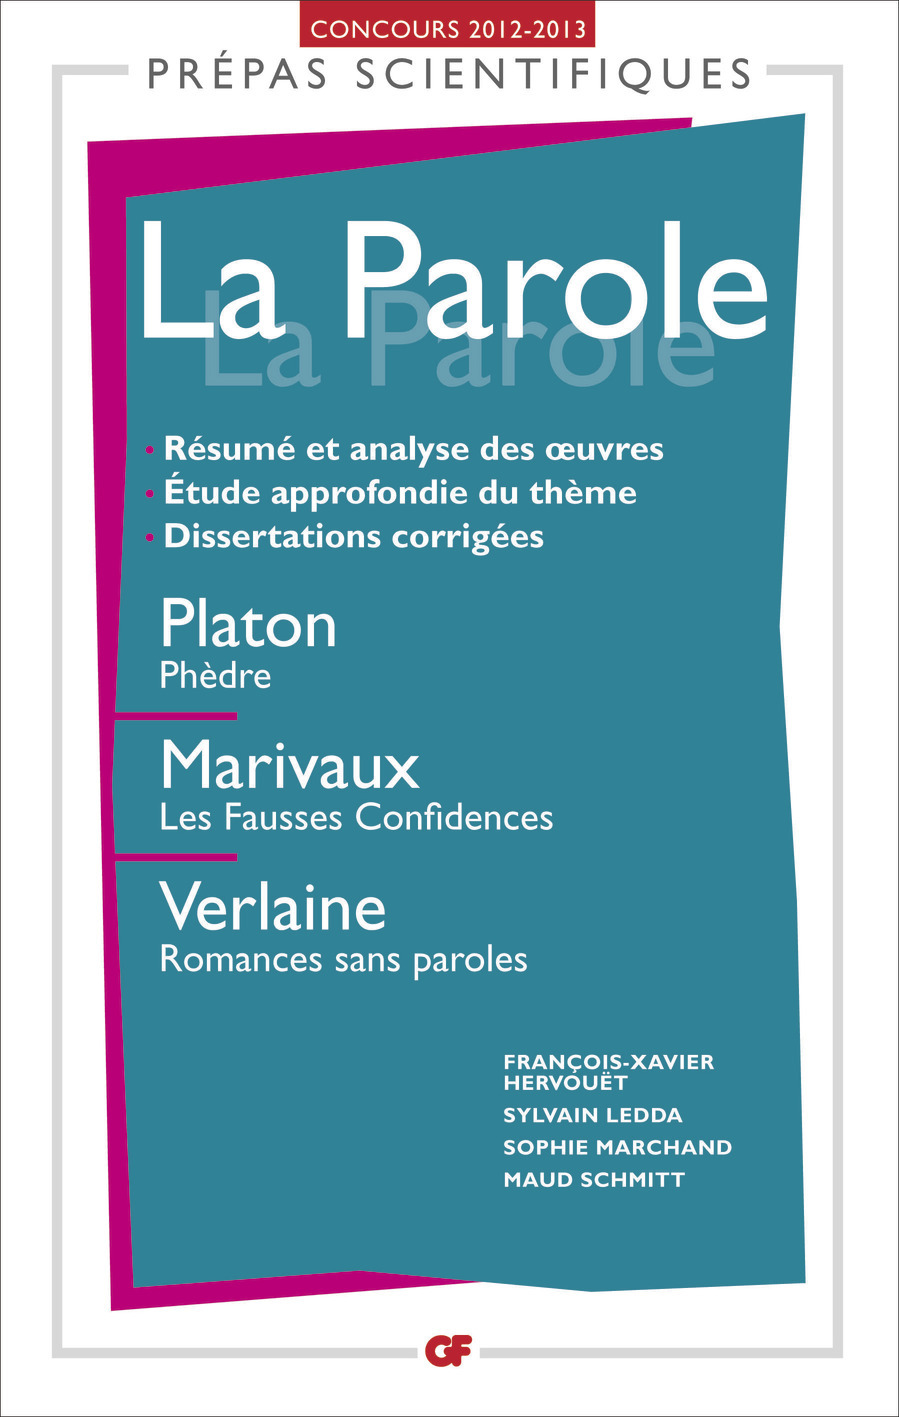 LA PAROLE - PLATON, PHEDRE - MARIVAUX, LES FAUSSES CONFIDENCES - VERLAINE, ROMANCES SANS PAROLES